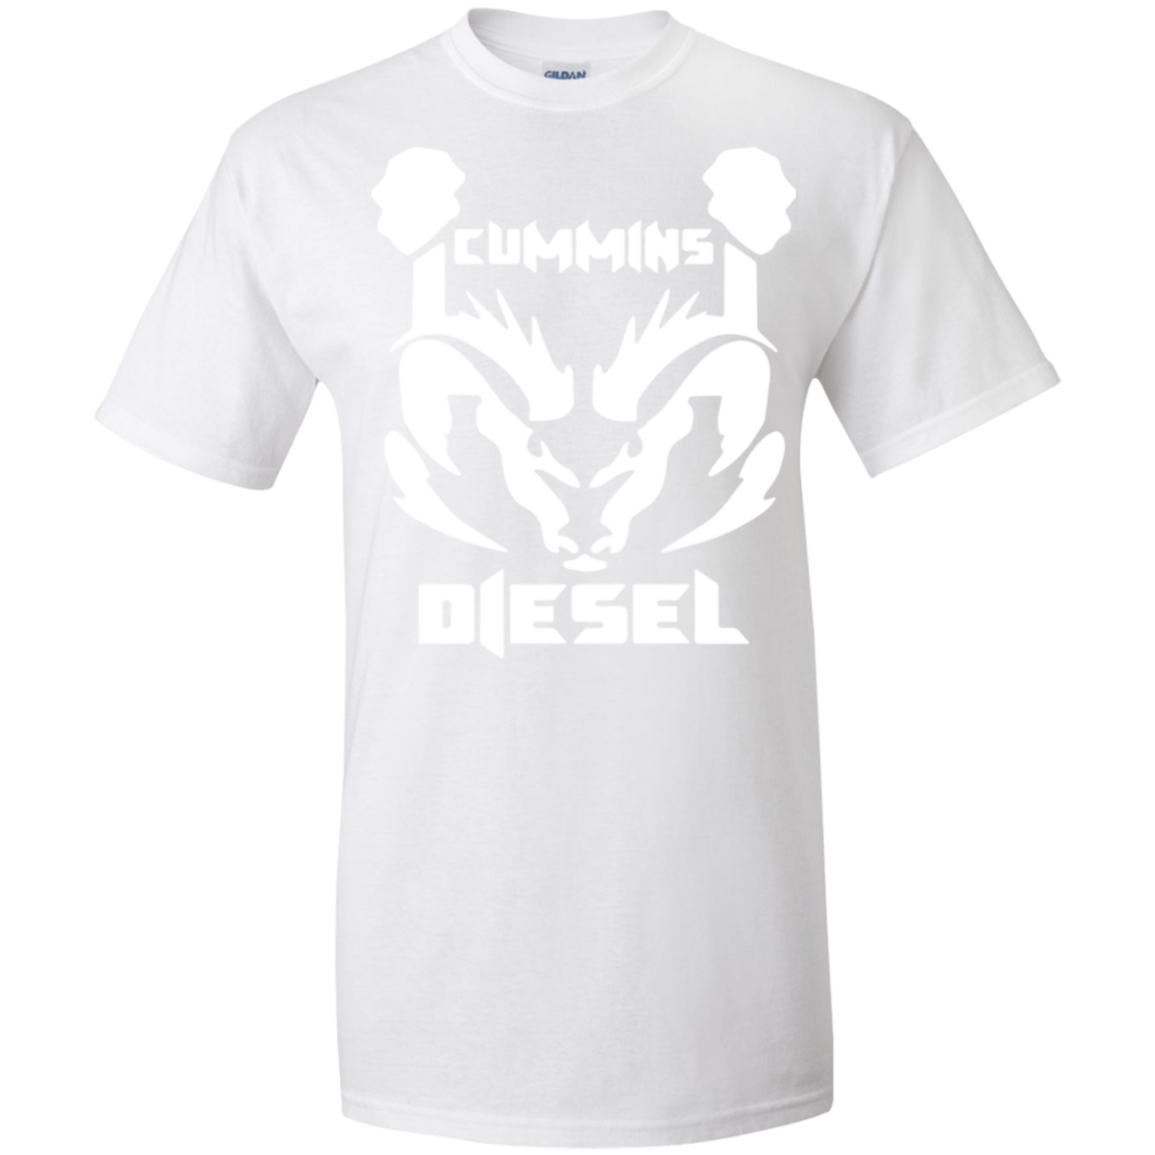 Cummins Diesel Gildan Tall Ultra Cotton T-Shirt